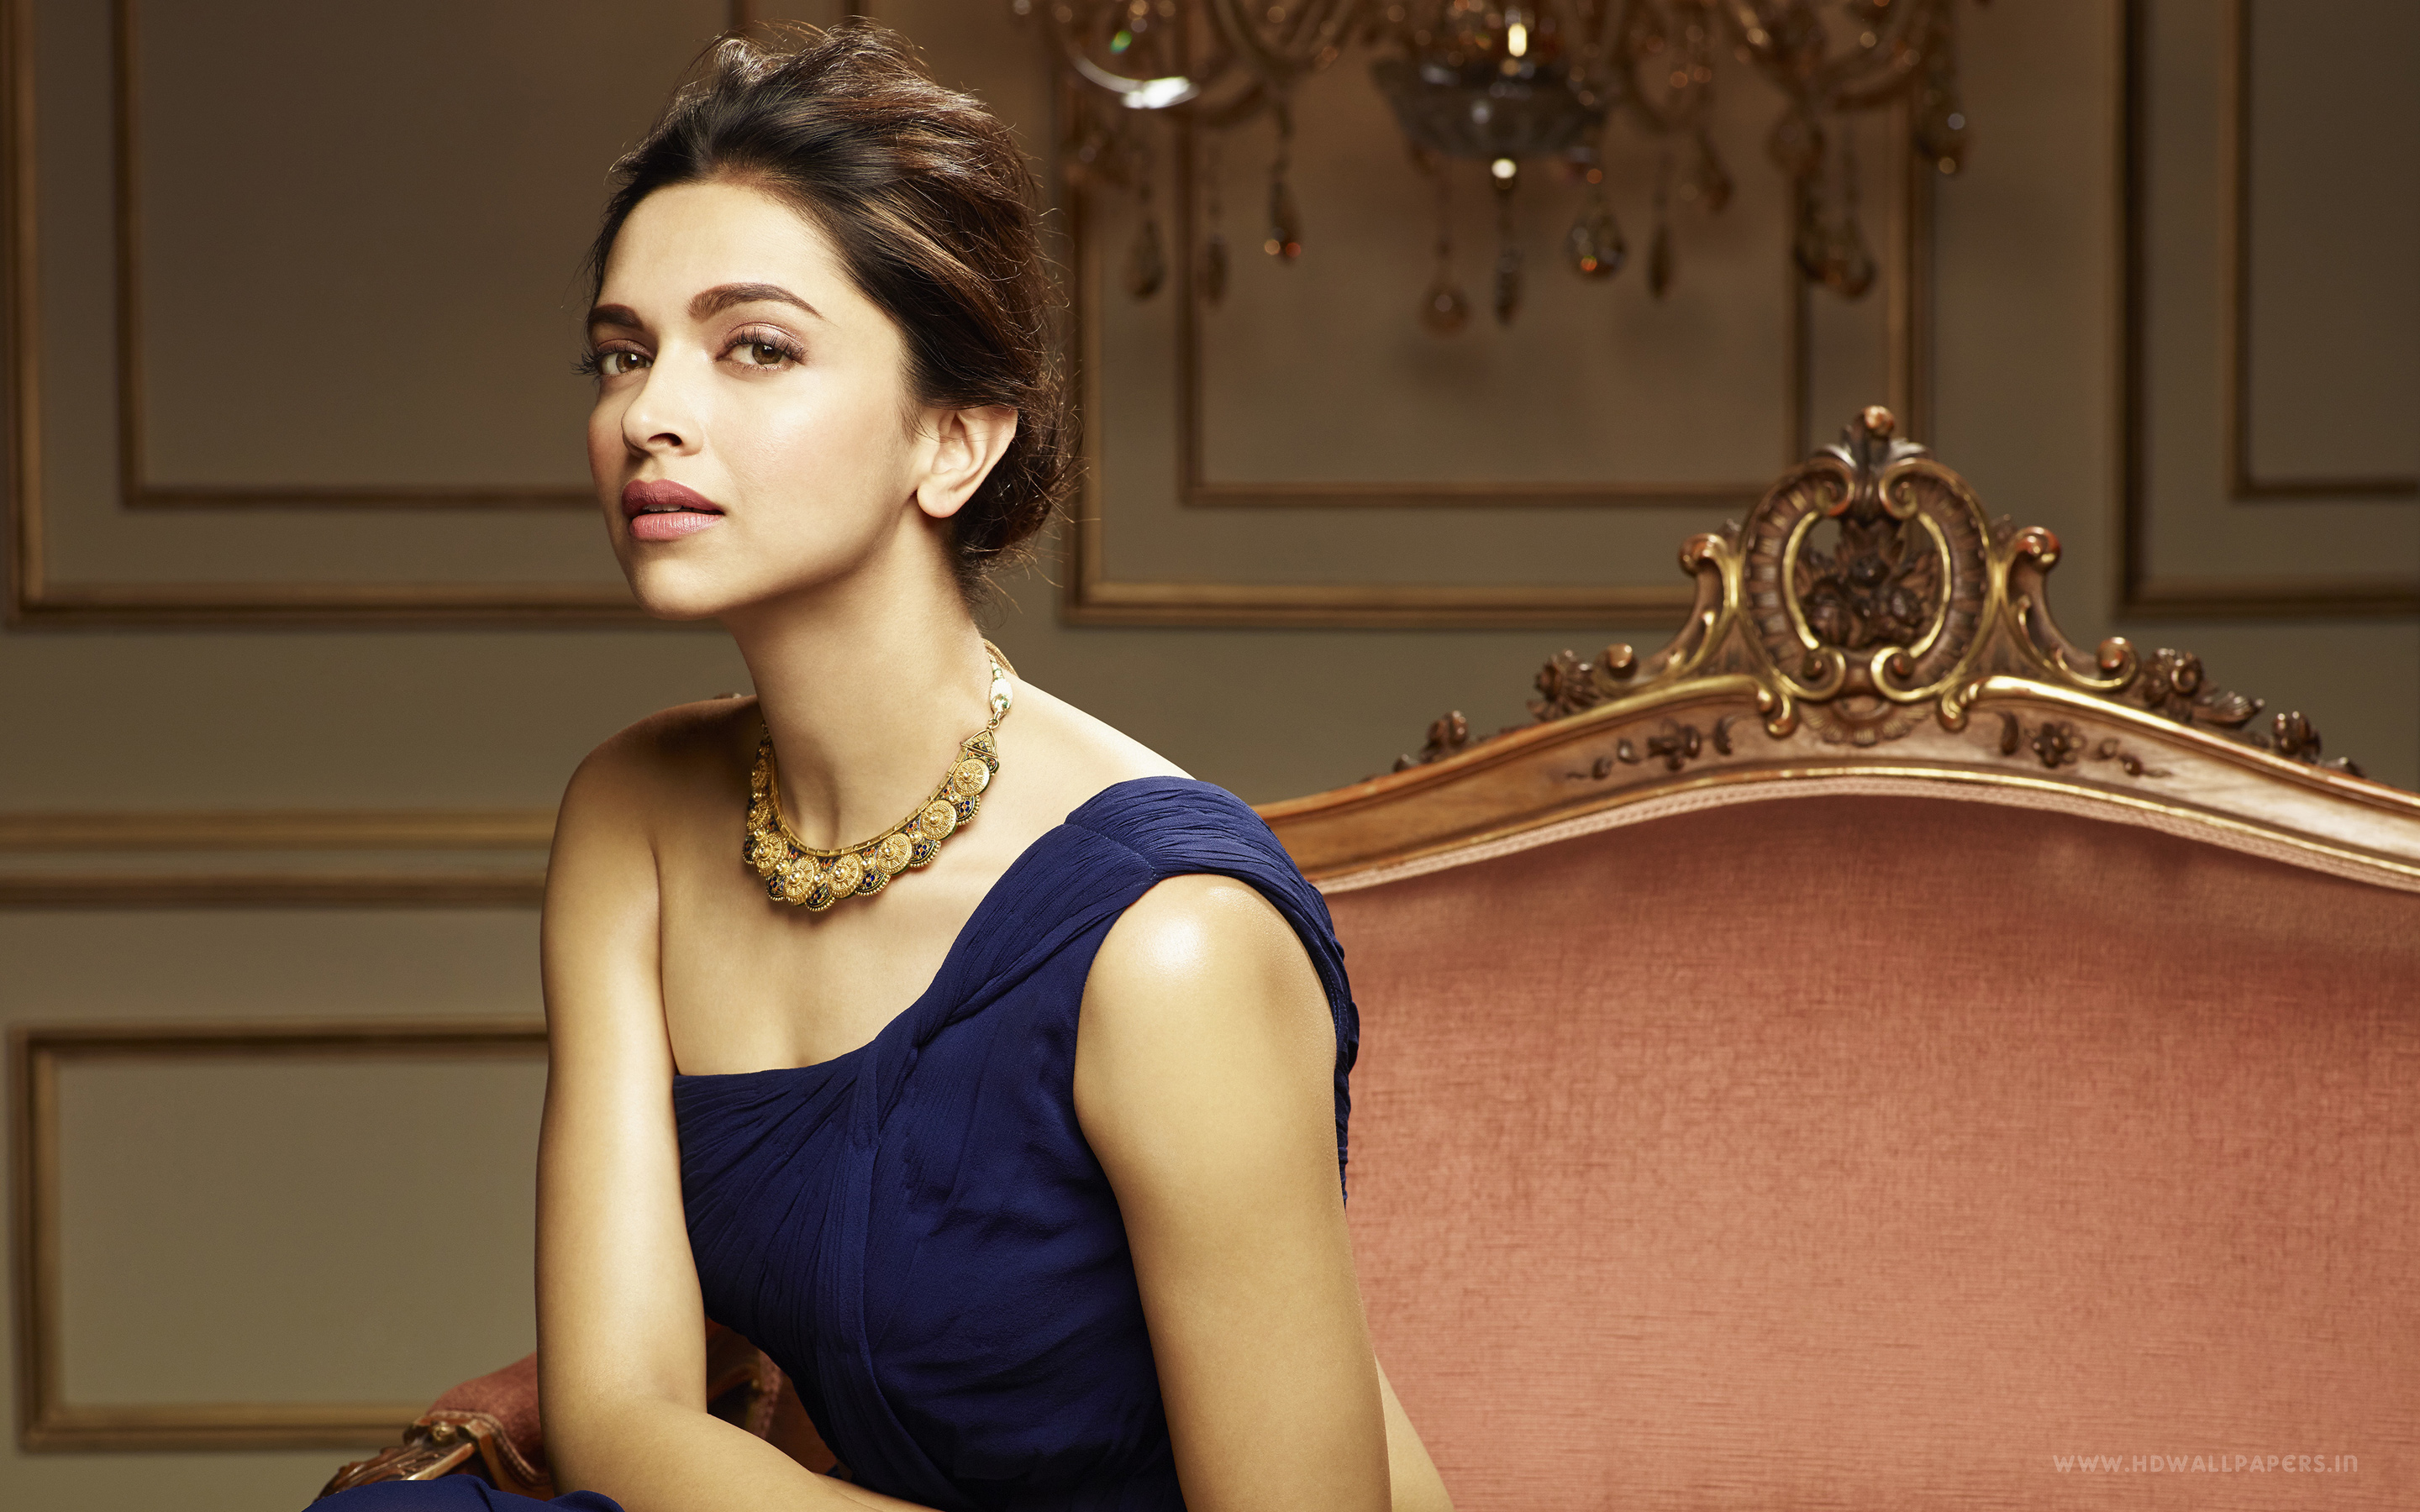 deepika padukone 53 wallpapers | wallpapers hd